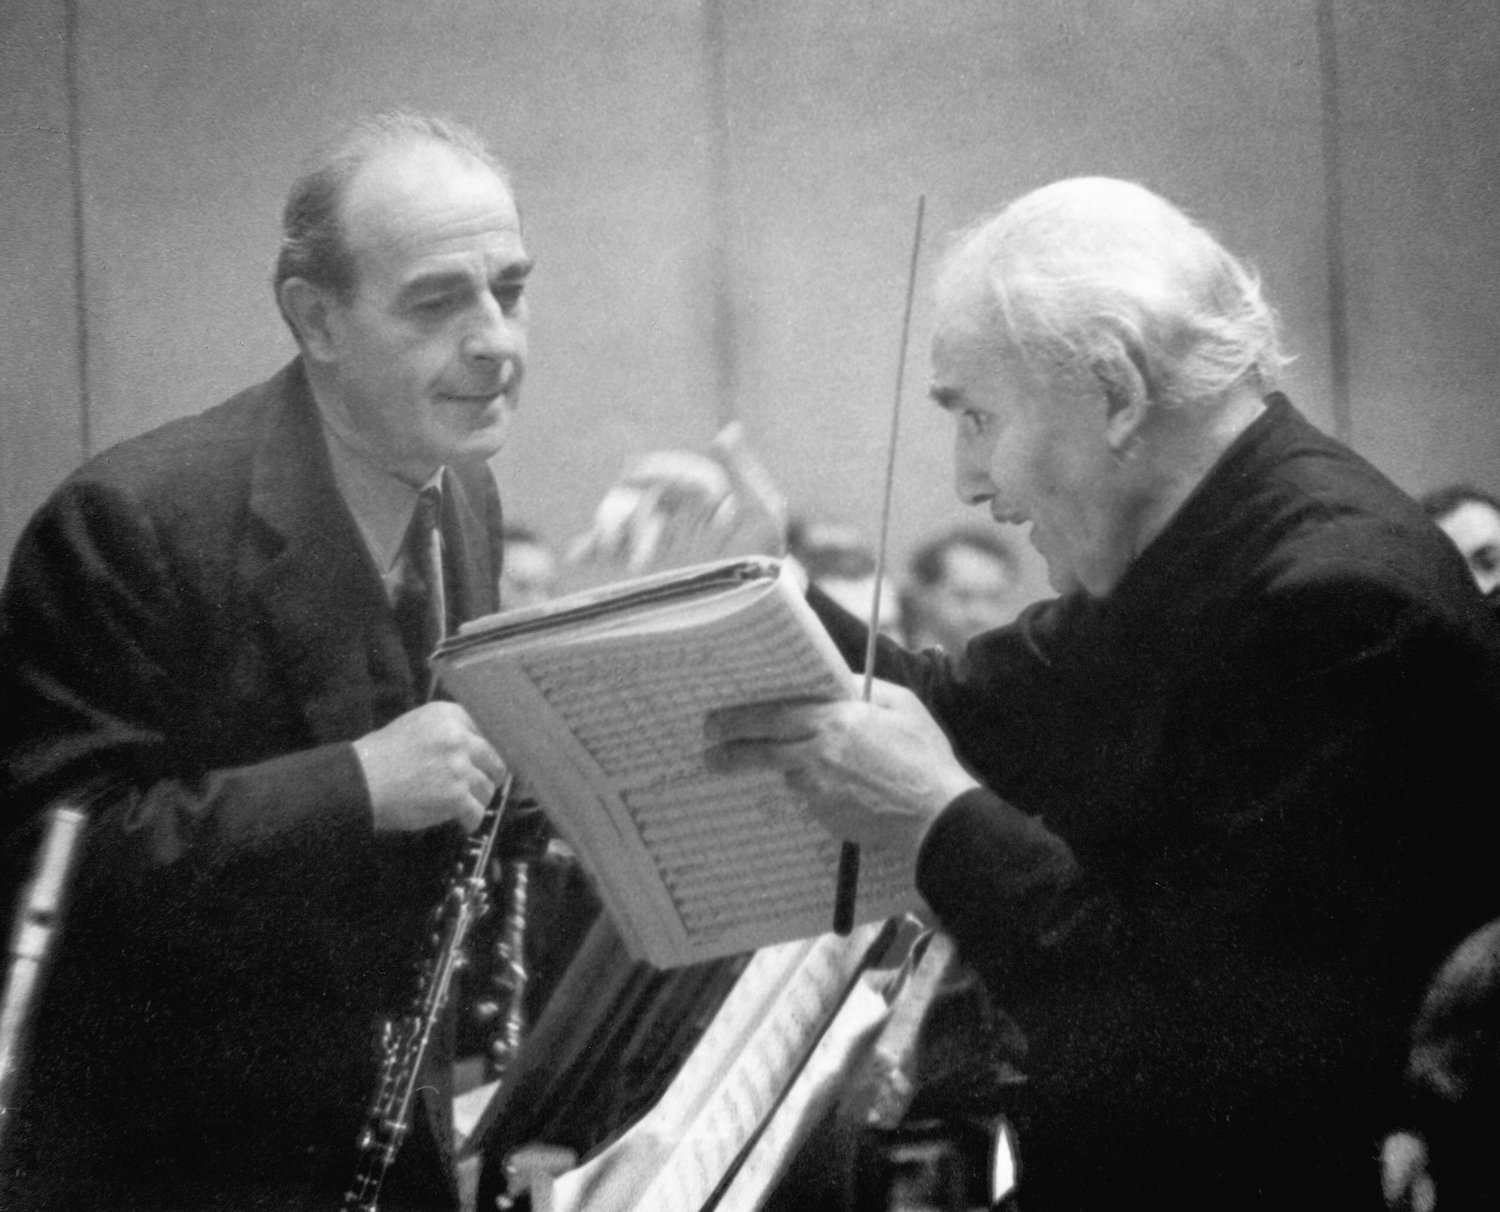 Marcel Tabuteau (left)the Philadelphia Orchestra's principal oboist from 1915 until his retirement in 1954, speaks with the renowned conductor Arturo Toscanini. (Photo courtesy of the Philadelphia Orchestra)